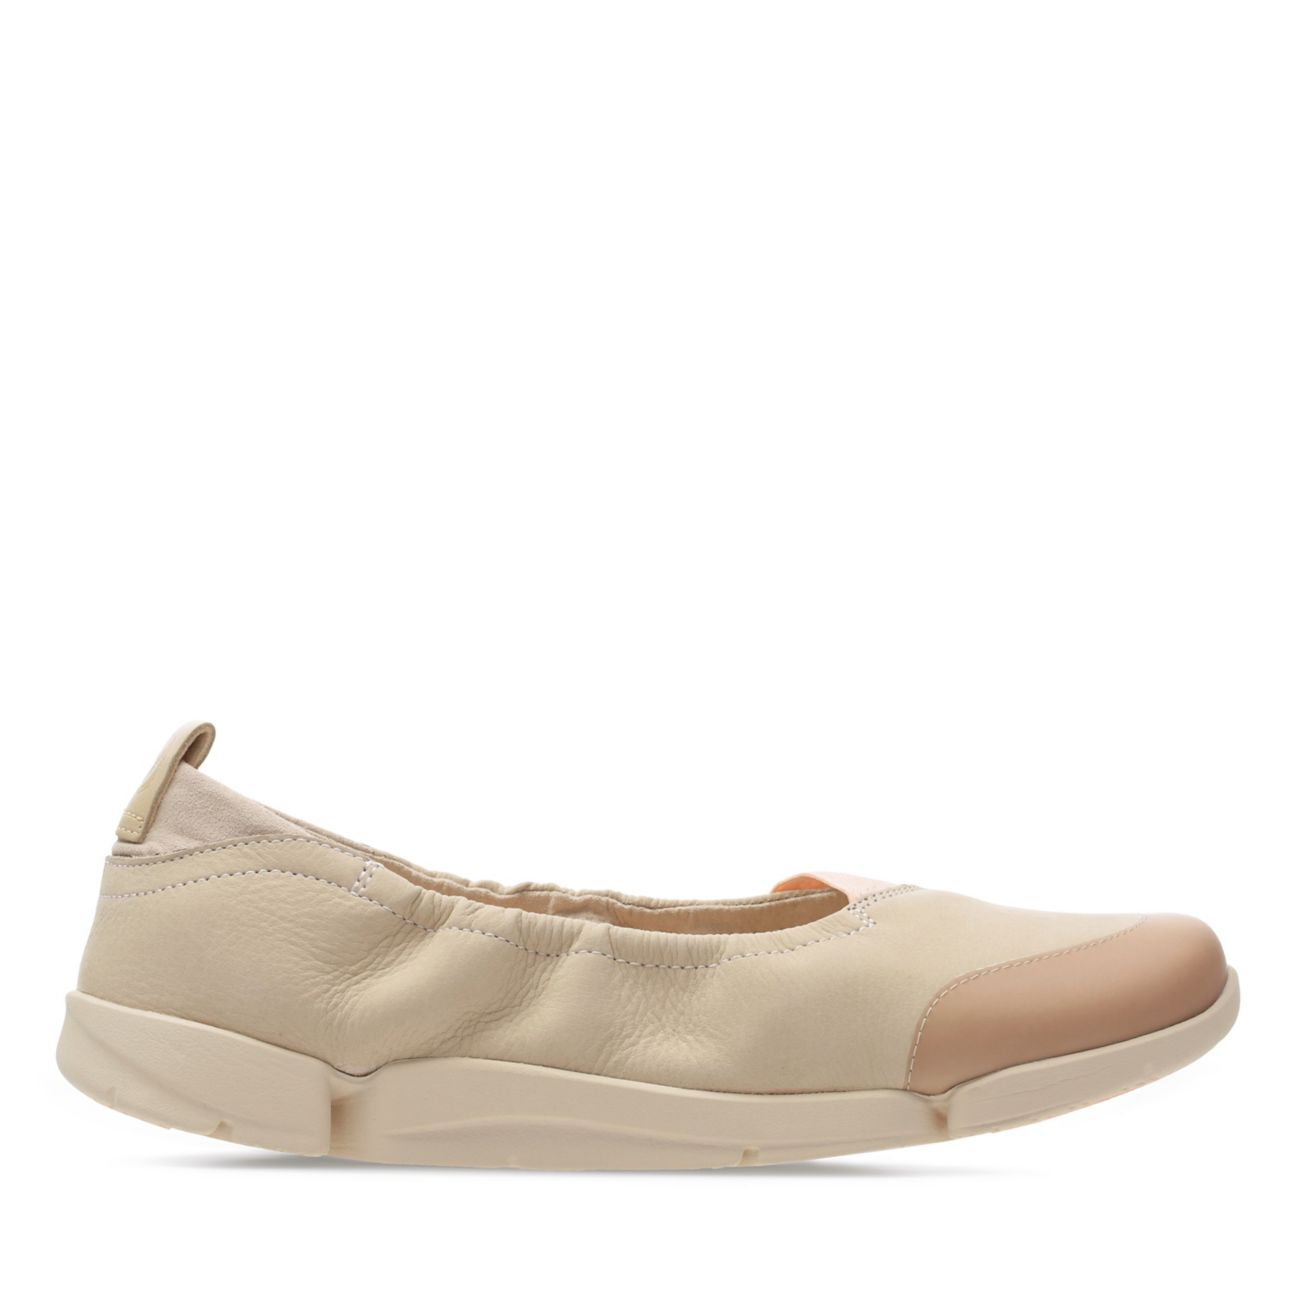 e157bd1bef Tri Adapt Nude Pink - Womens Flats - Clarks® Shoes Official Site | Clarks